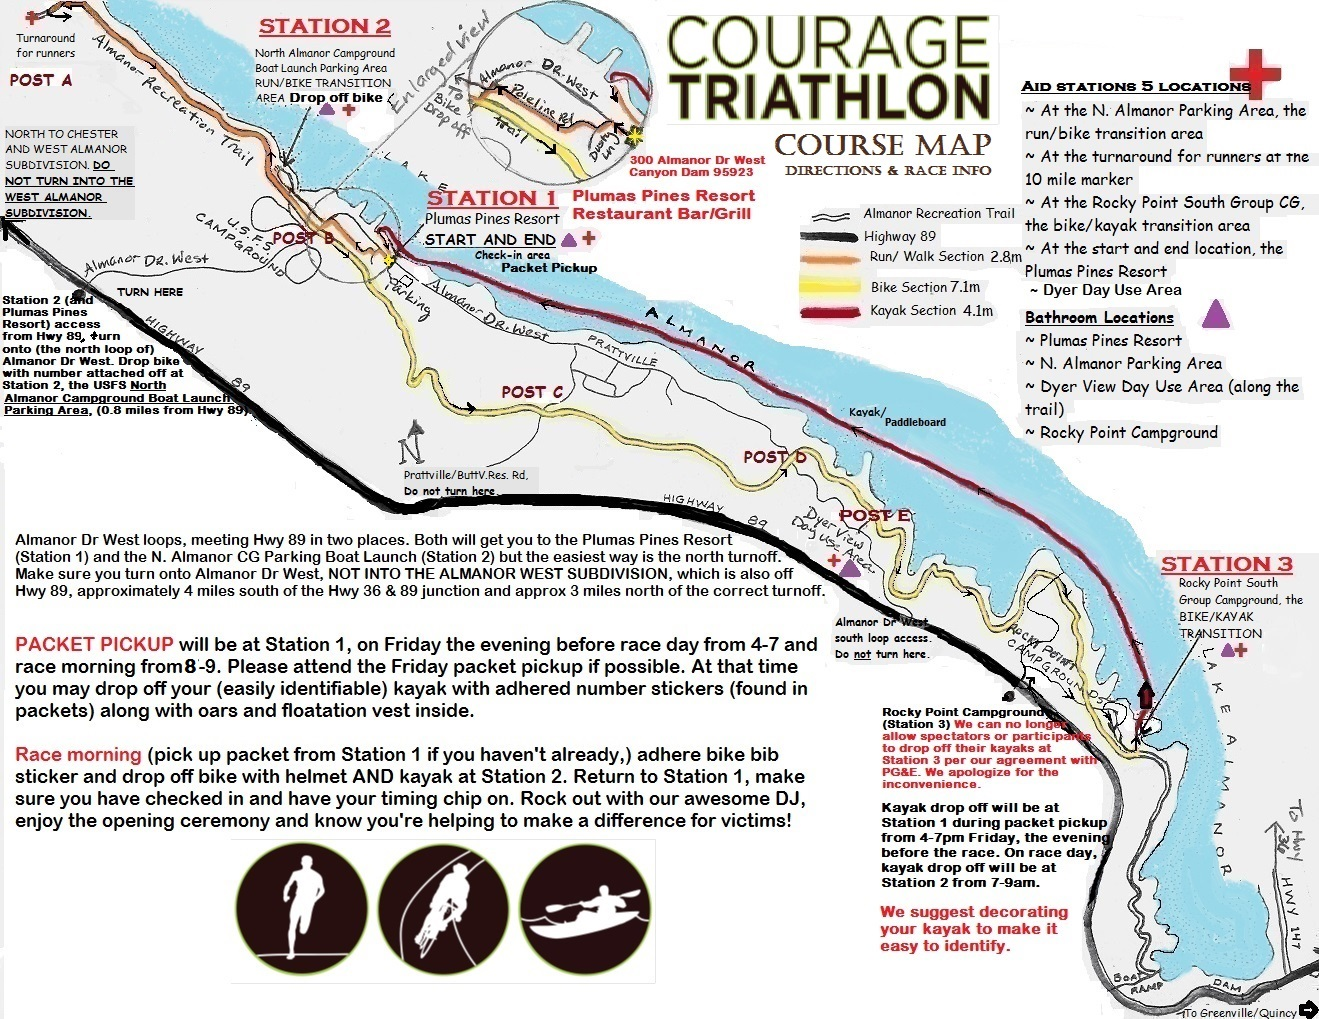 Courage Triathlon Map